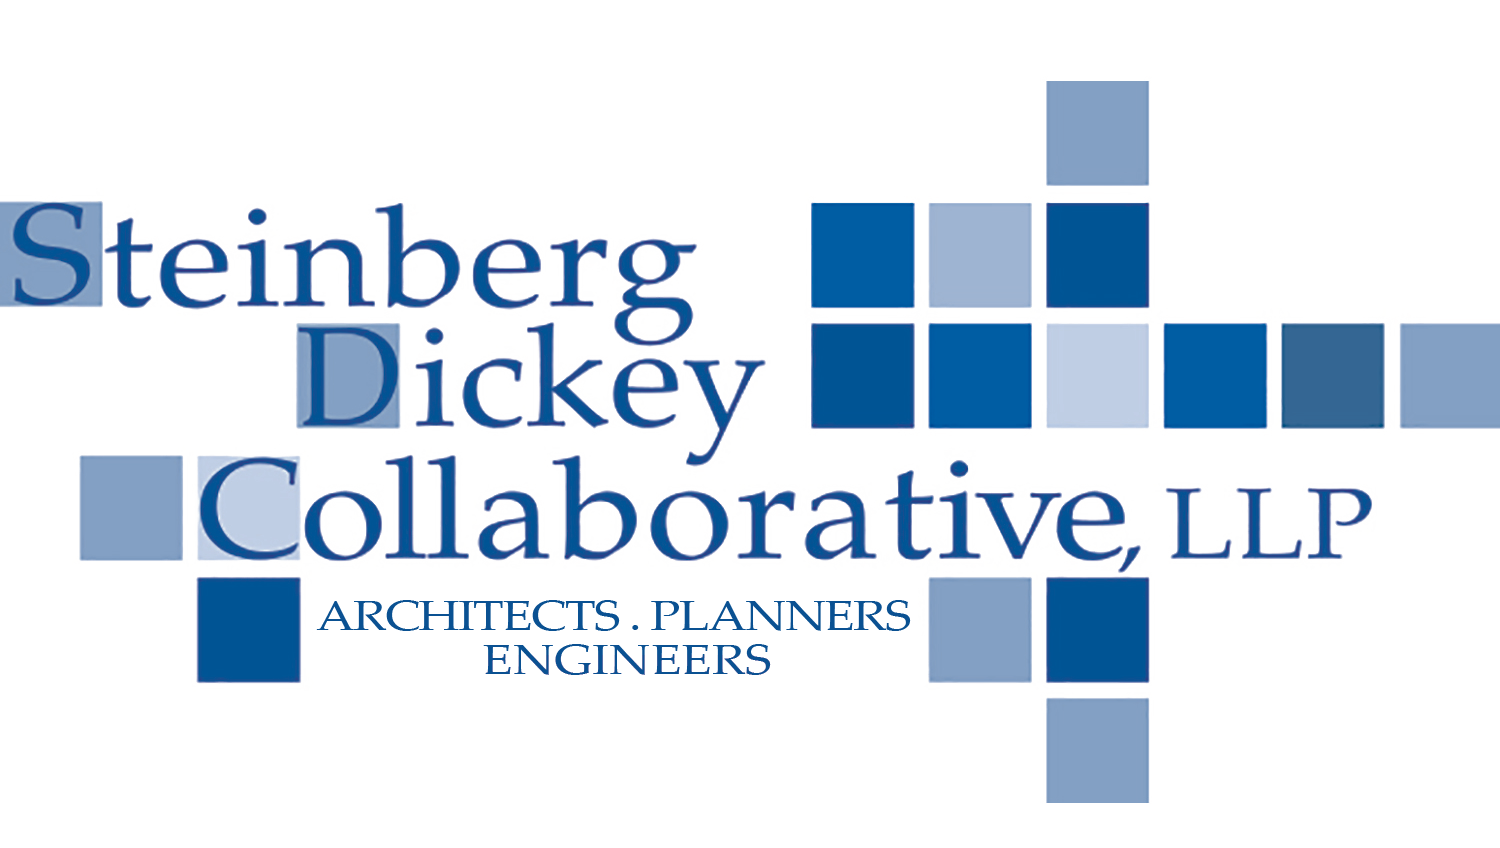 Steinberg Dickey Collabaorative